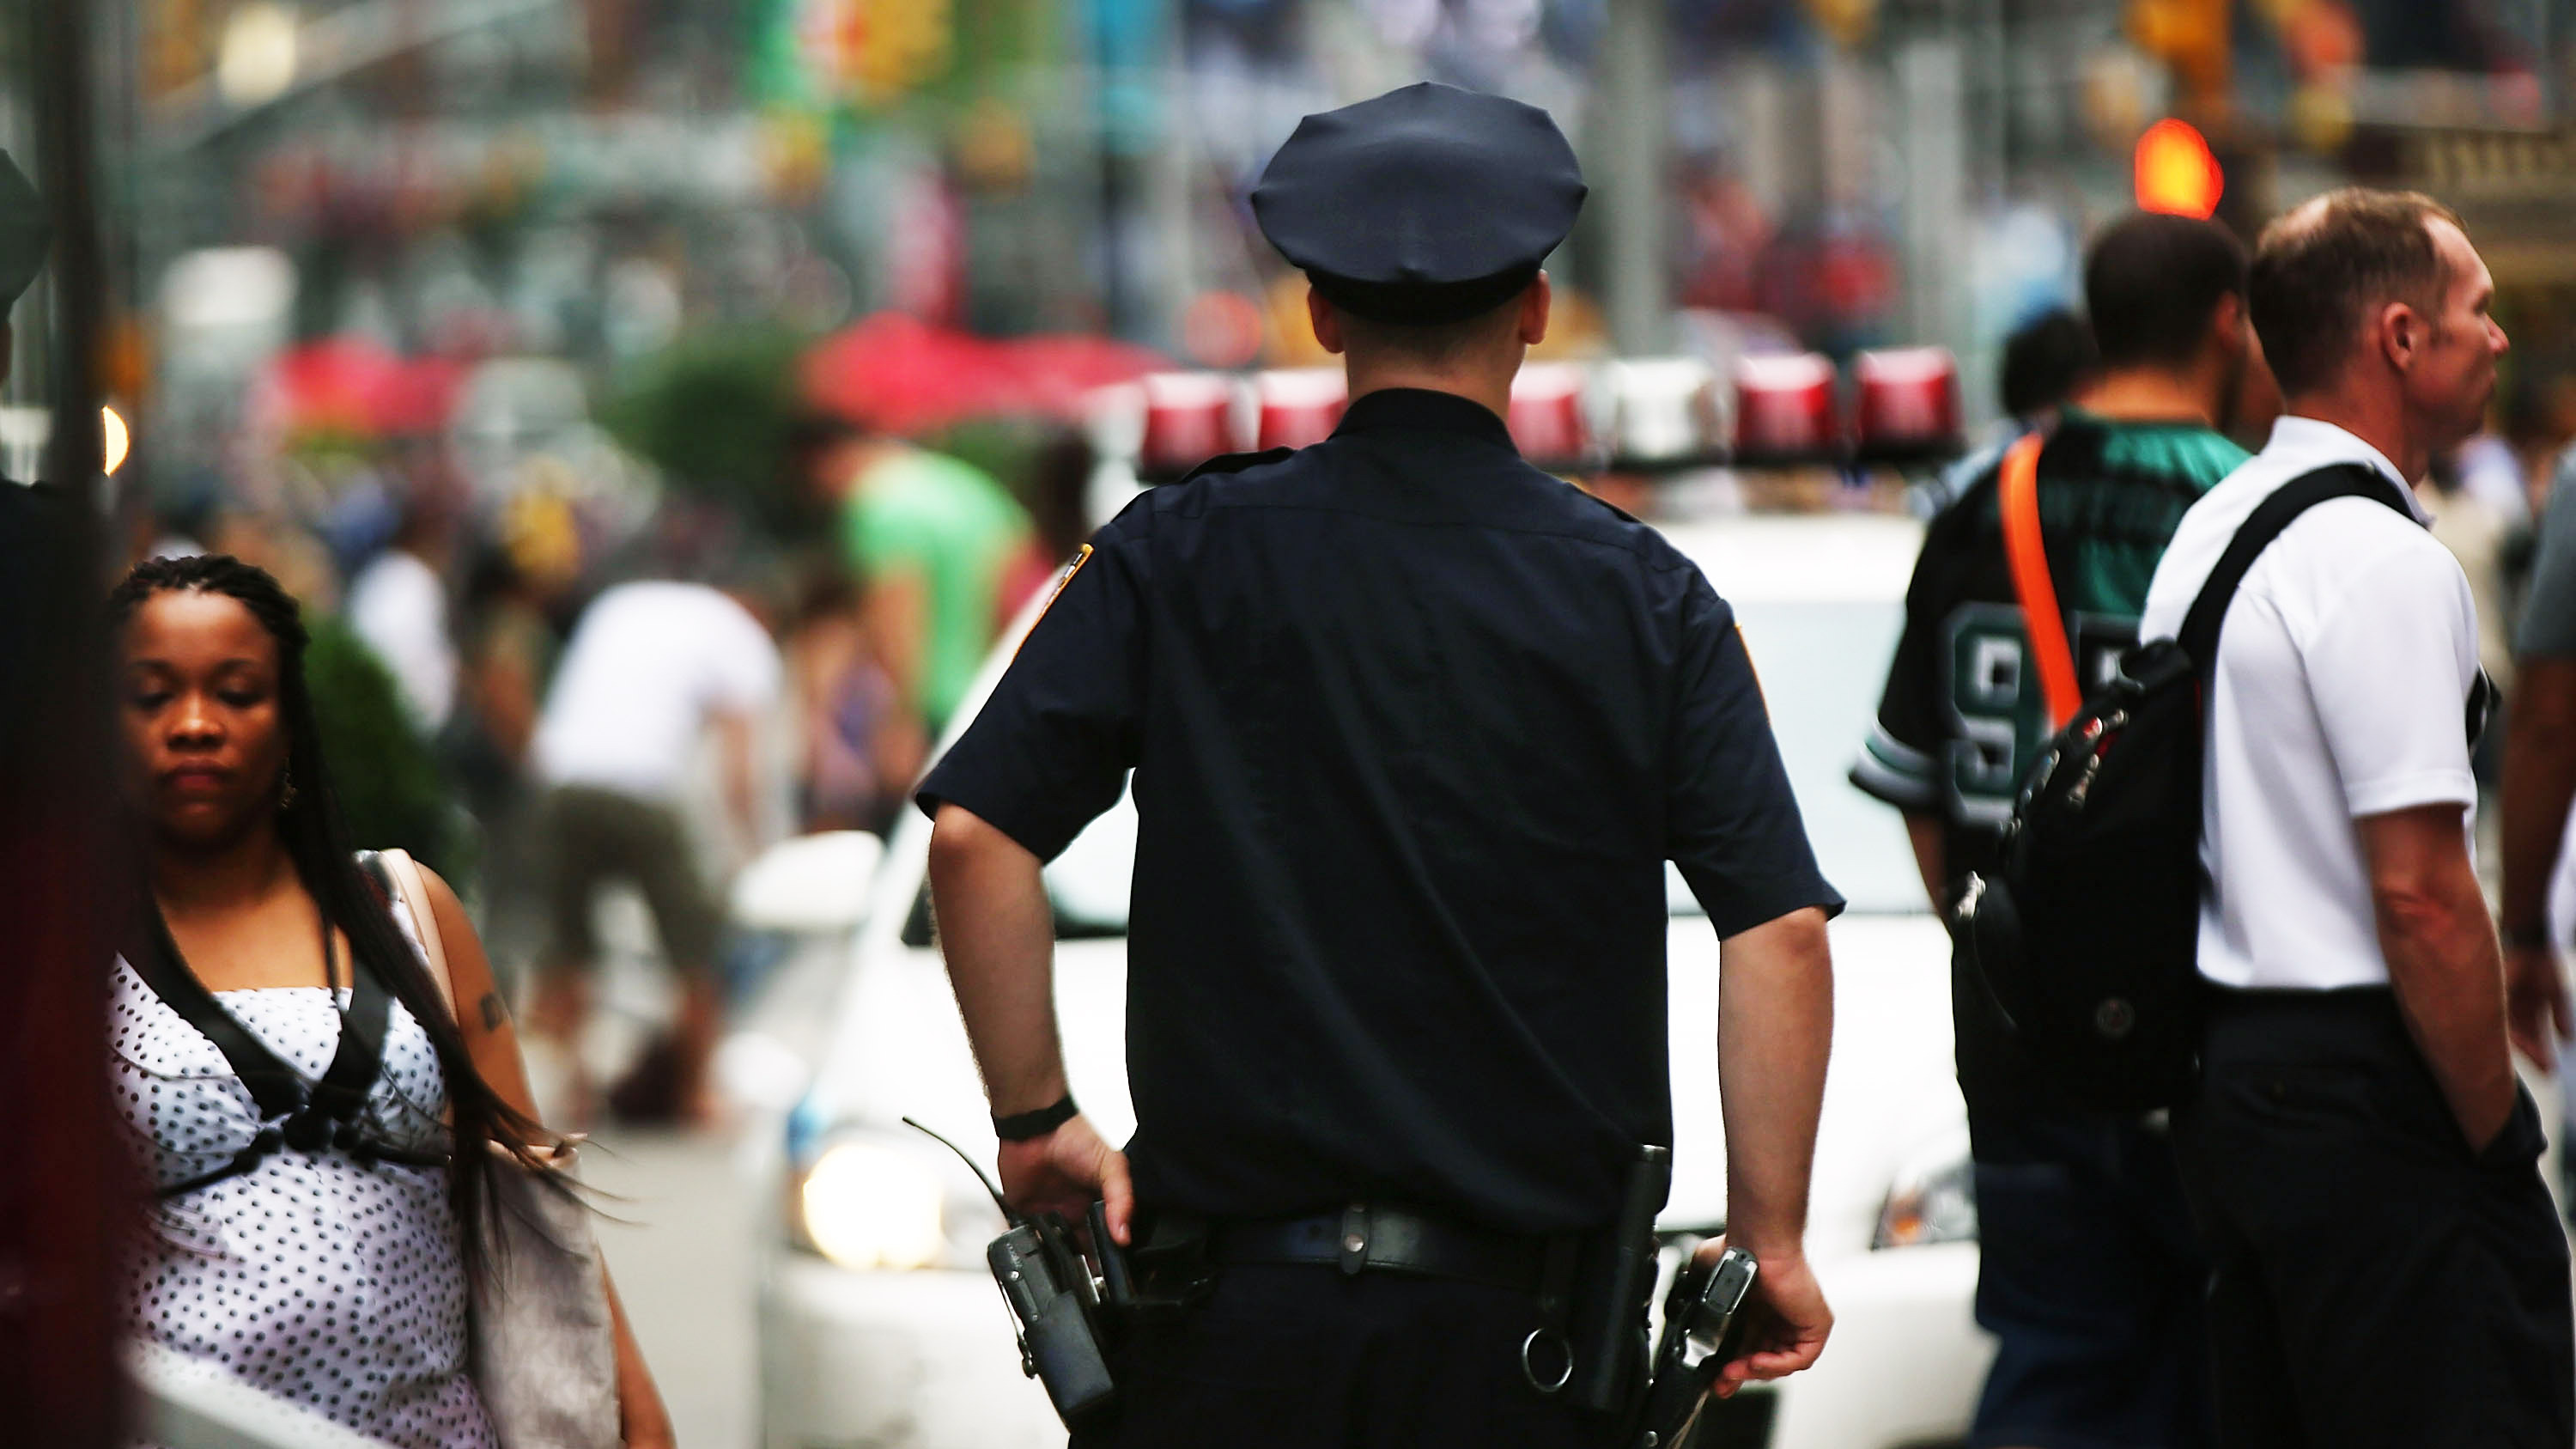 Multiple lawsuits accuse the New York City Police Department of pressuring officers into fulfilling monthly quotes for tickets and arrests, resulting in warrantless stops. The NYPD denies the allegations. (Photo by Spencer Platt/Getty)